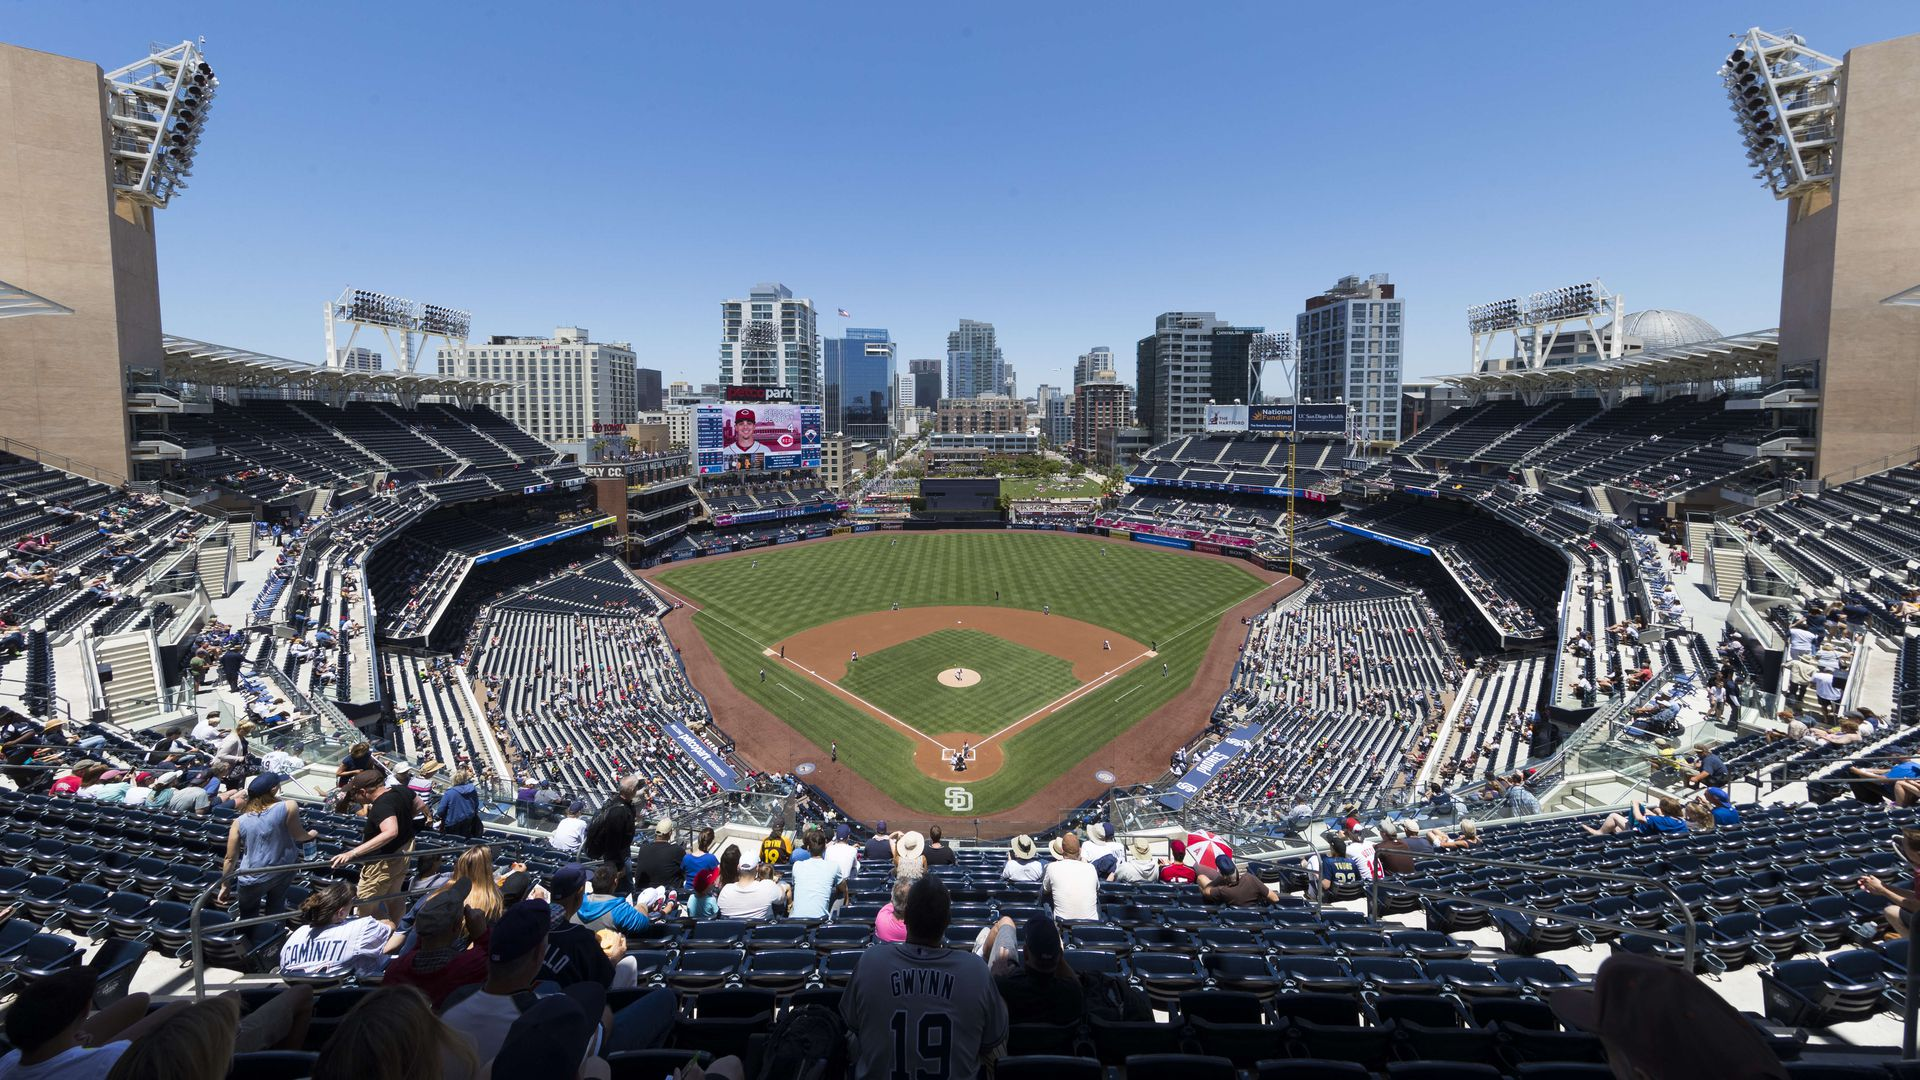 View of the interior of Petco Park during a MLB regular season game last year